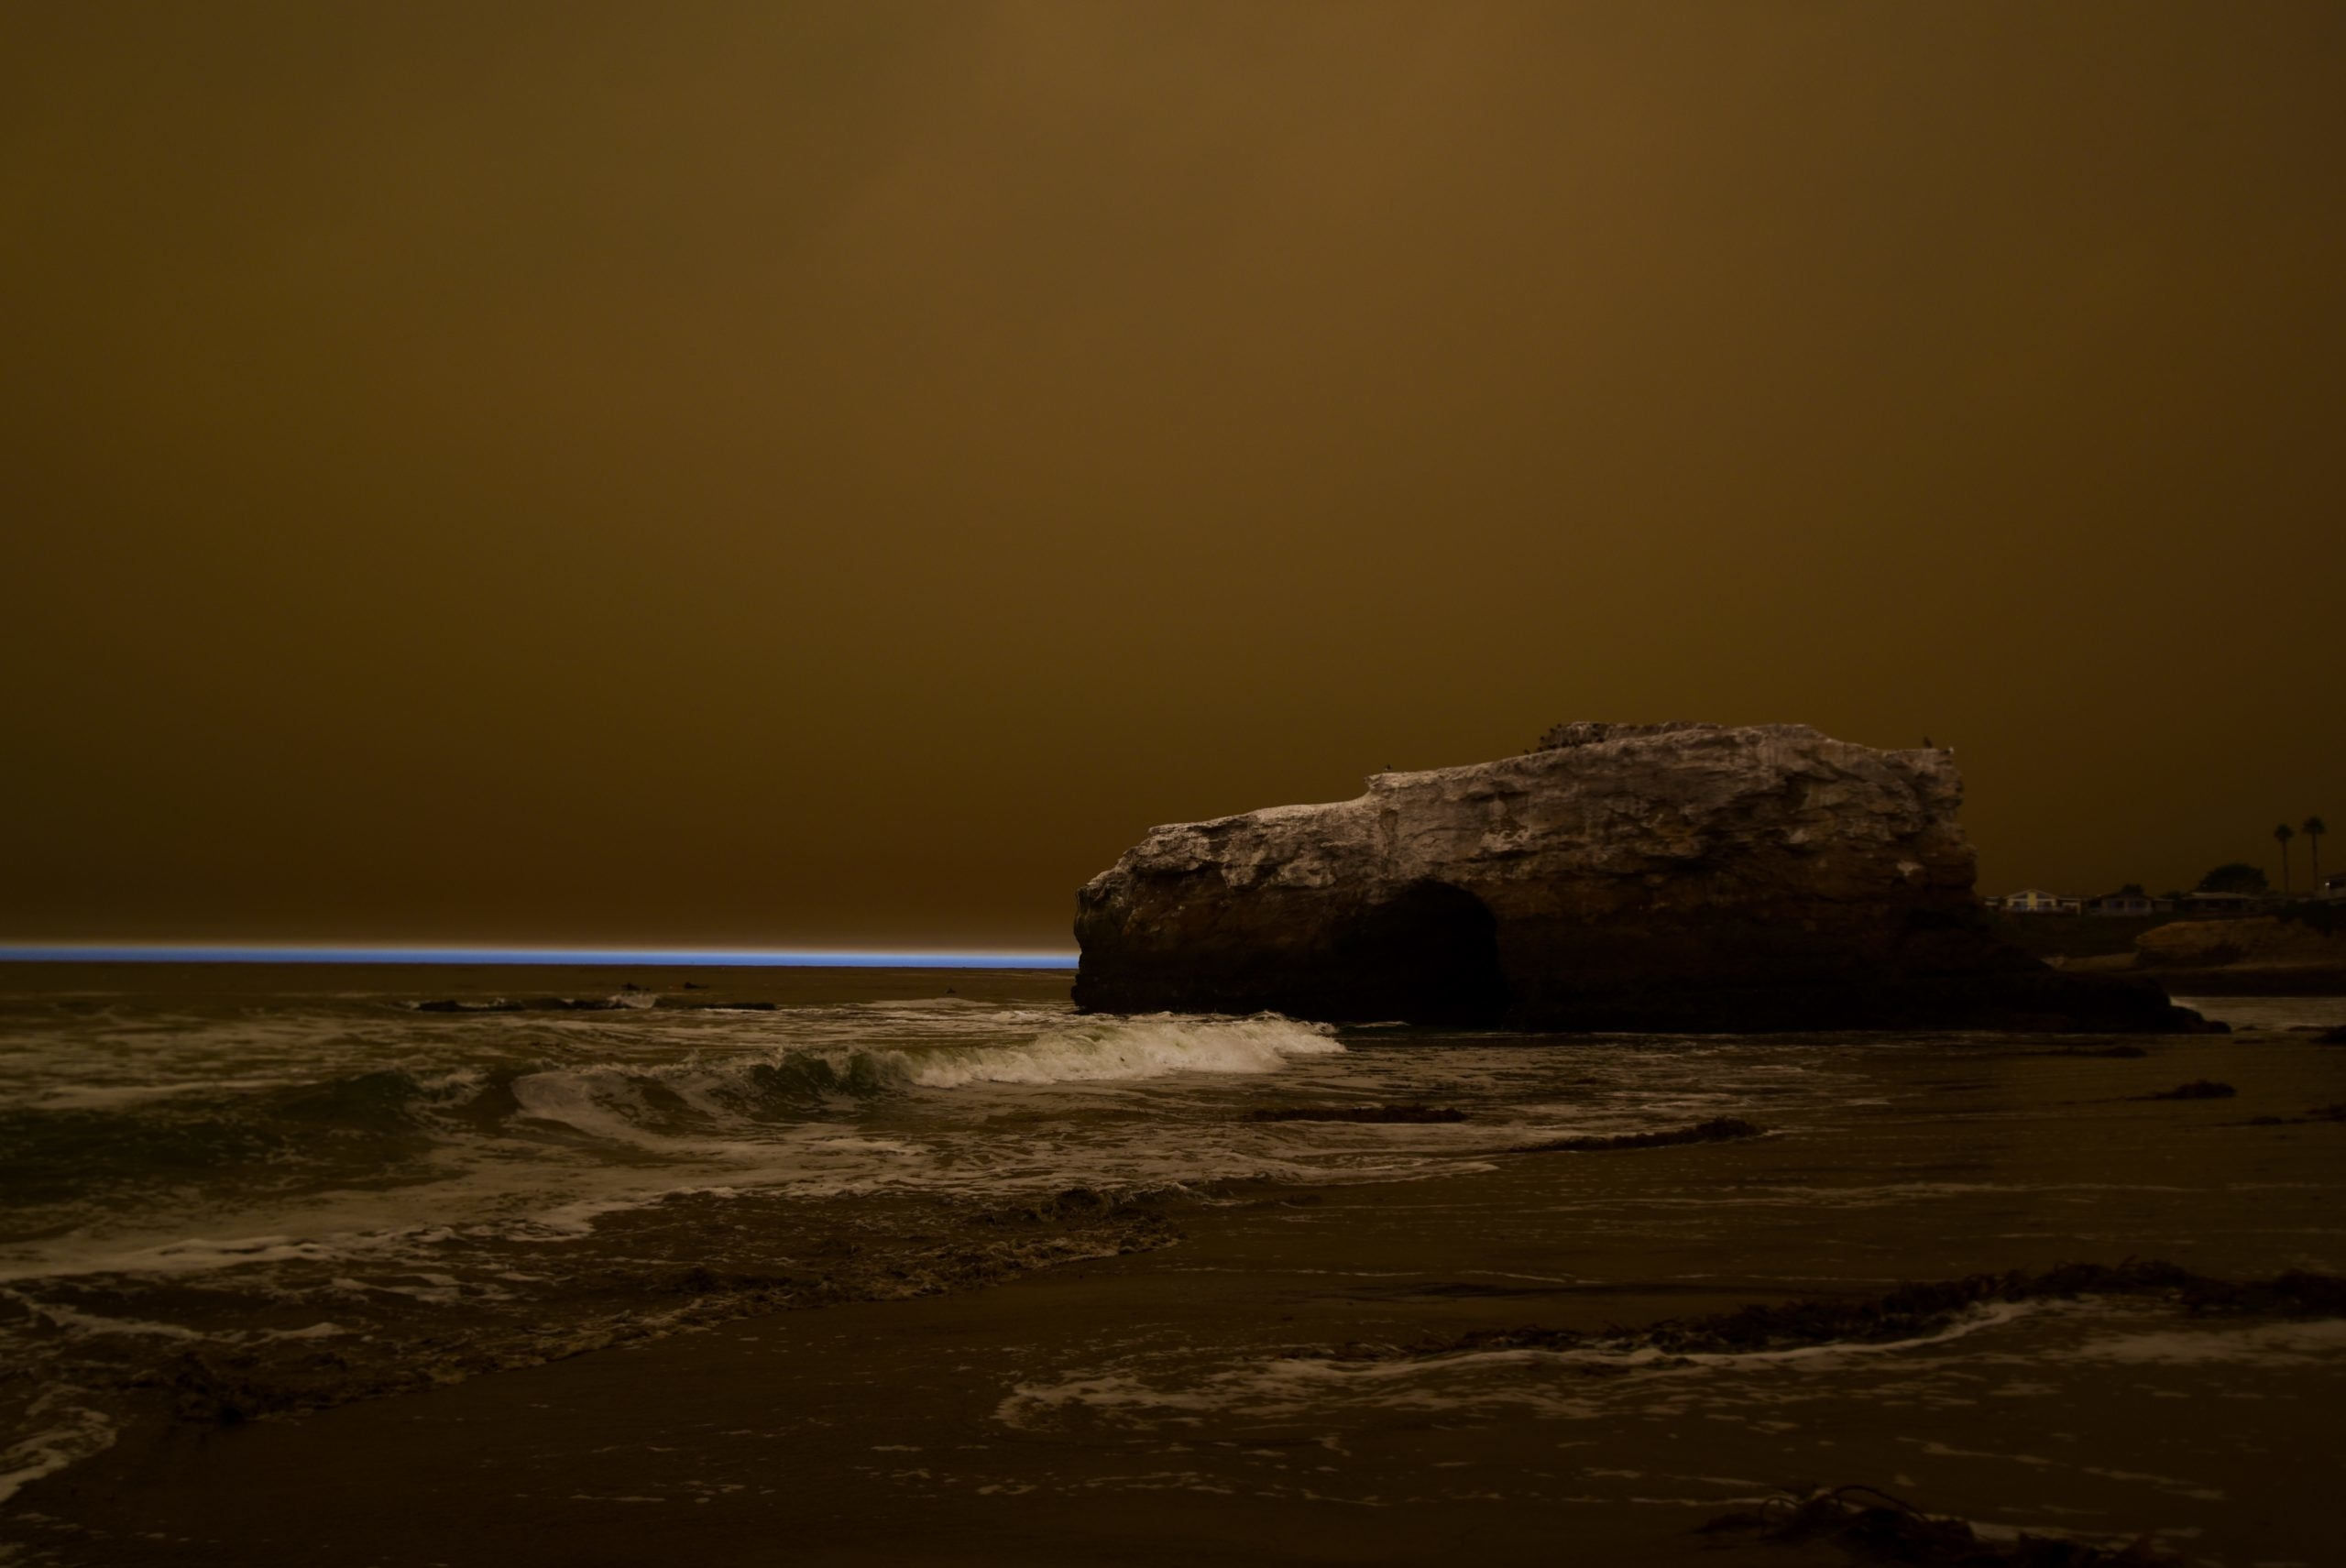 A rock pillar along the beach under a brown sky with a thin sliver of blue along the horizon.